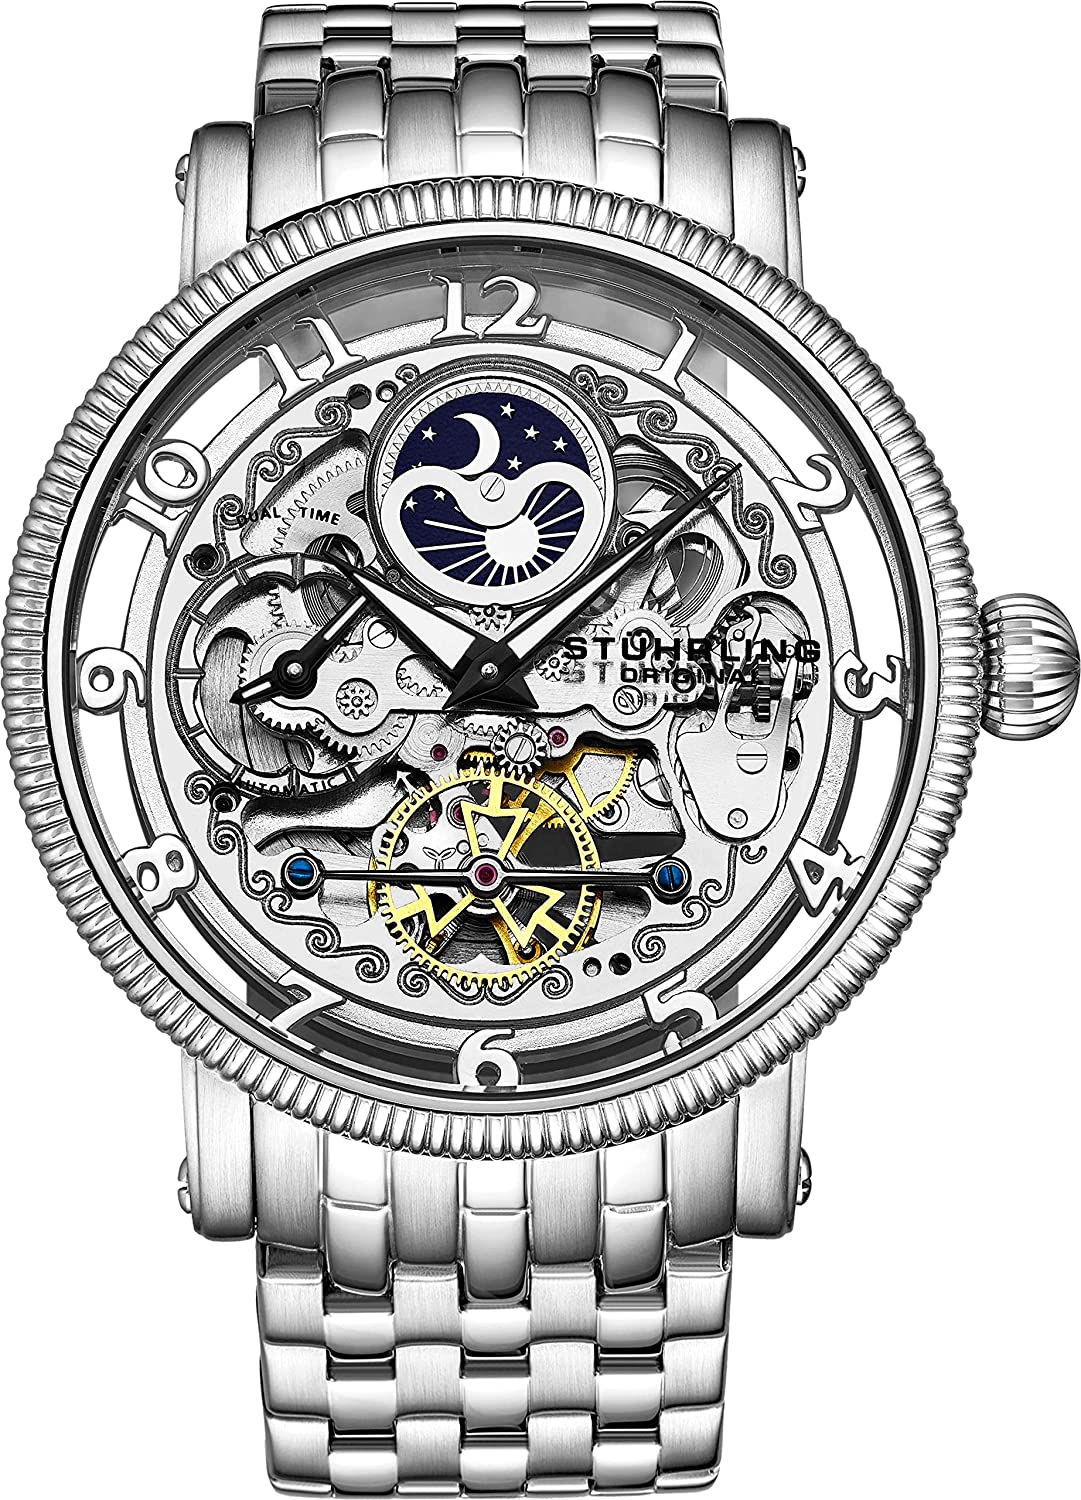 b34671740 Stührling Original Mens Automatic Watch, Skeleton Watch Analog Dial, Silver  Accents, Dual Time, AM/PM Sun Moon, Stainless Steel Bracelet, 3922 Watches  for ...